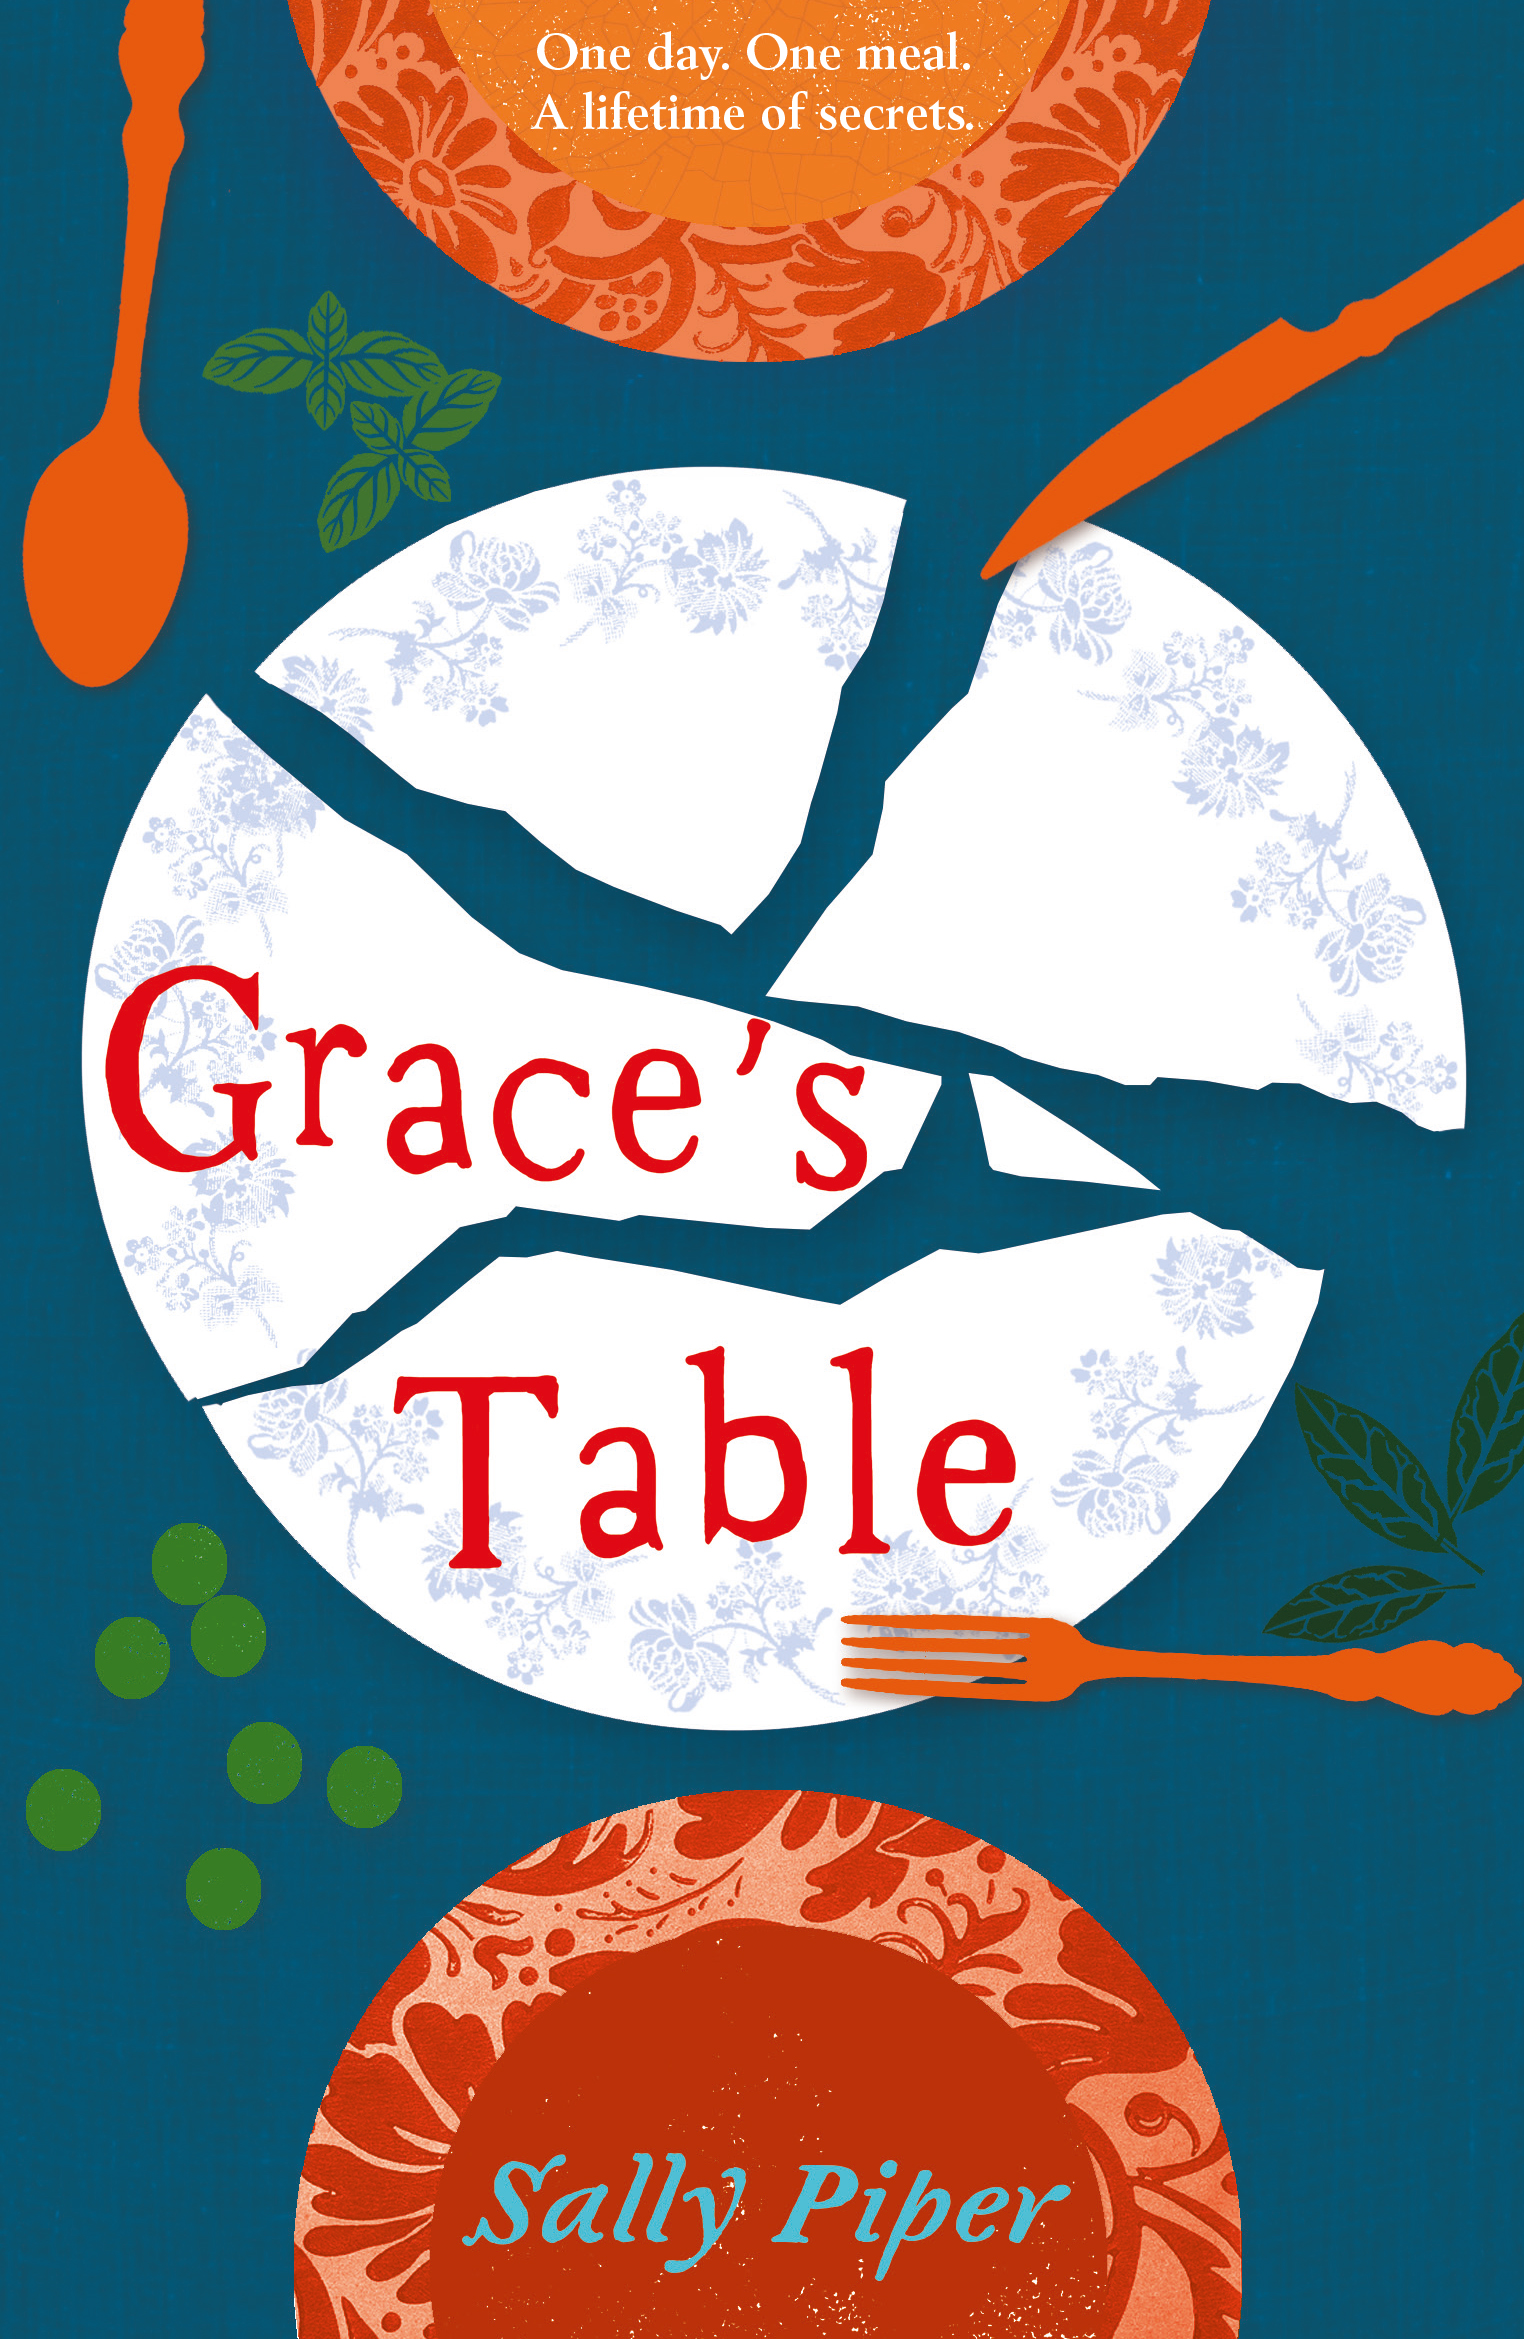 Grace's Table Final Cover Legend.jpg